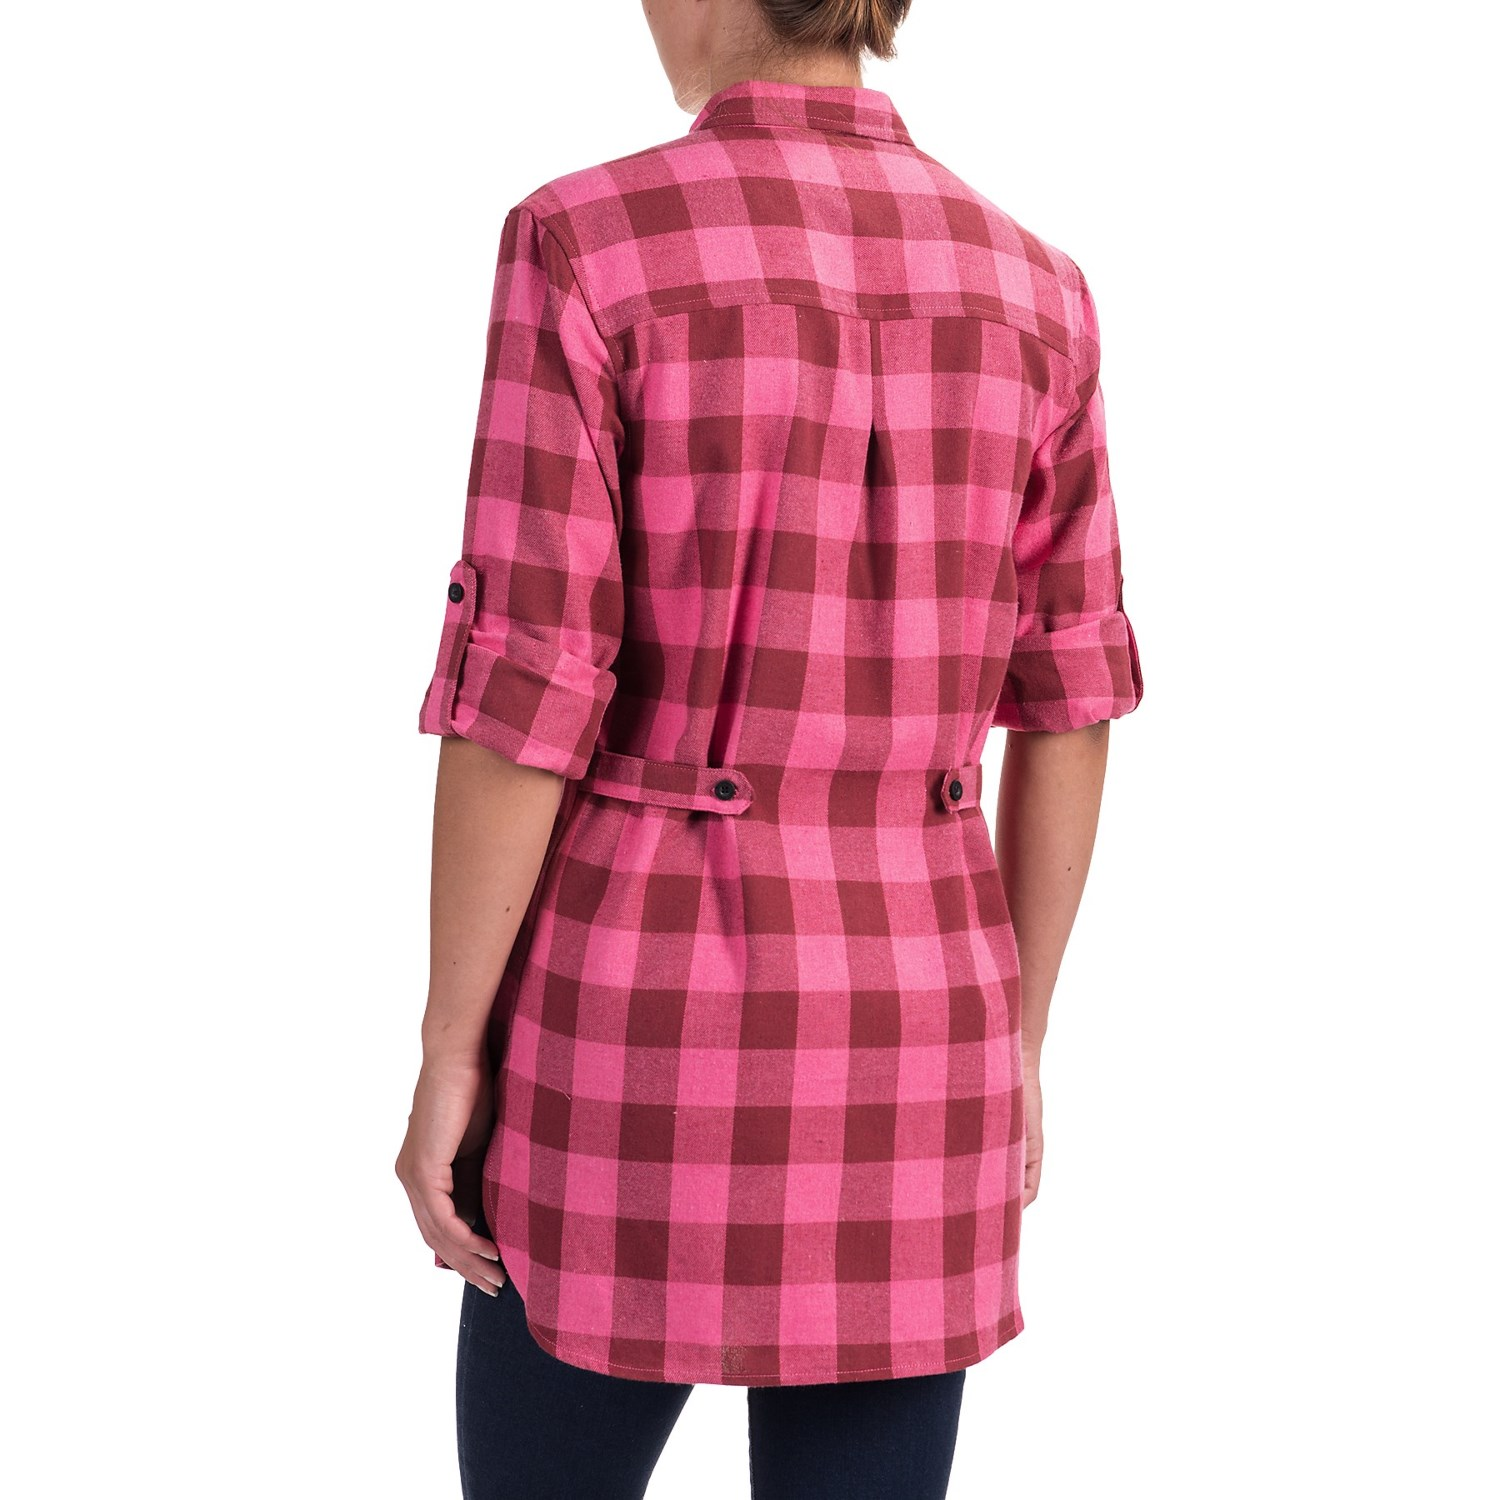 Buy Womens tops Shirts Pink from the Next UK online shop